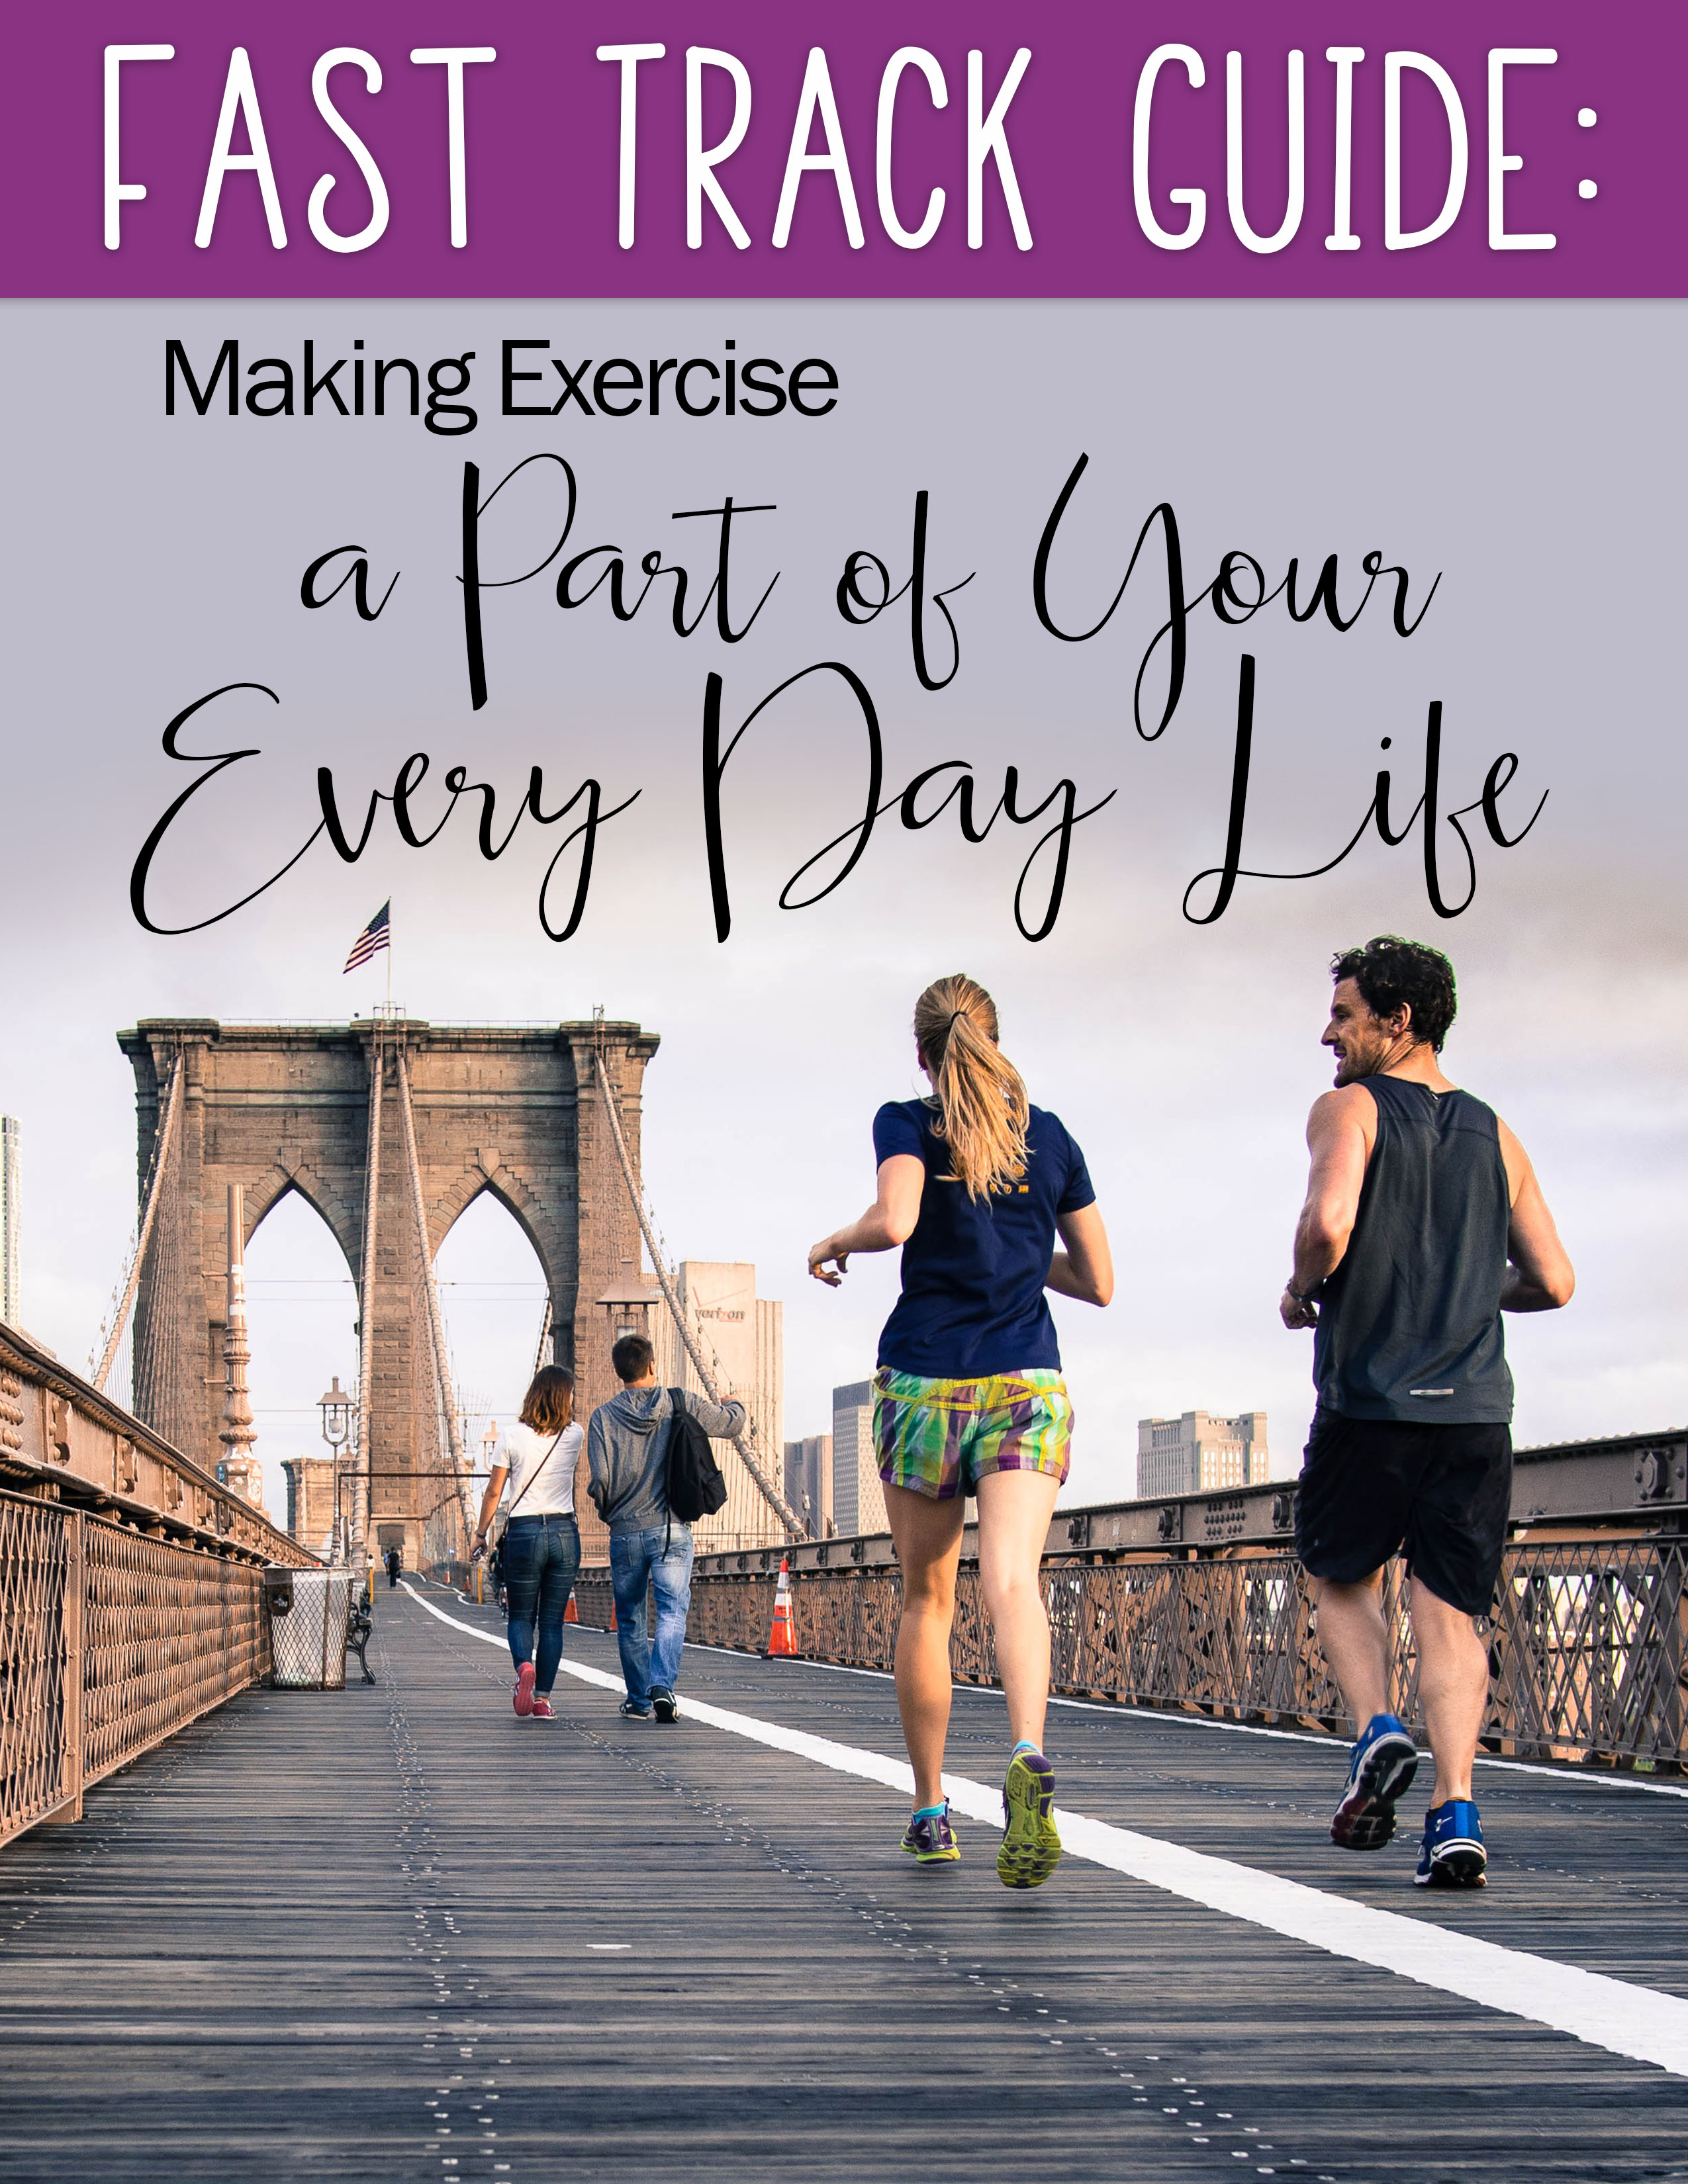 Fast Track Guide Making Exercise a Part of Your Every Day Life